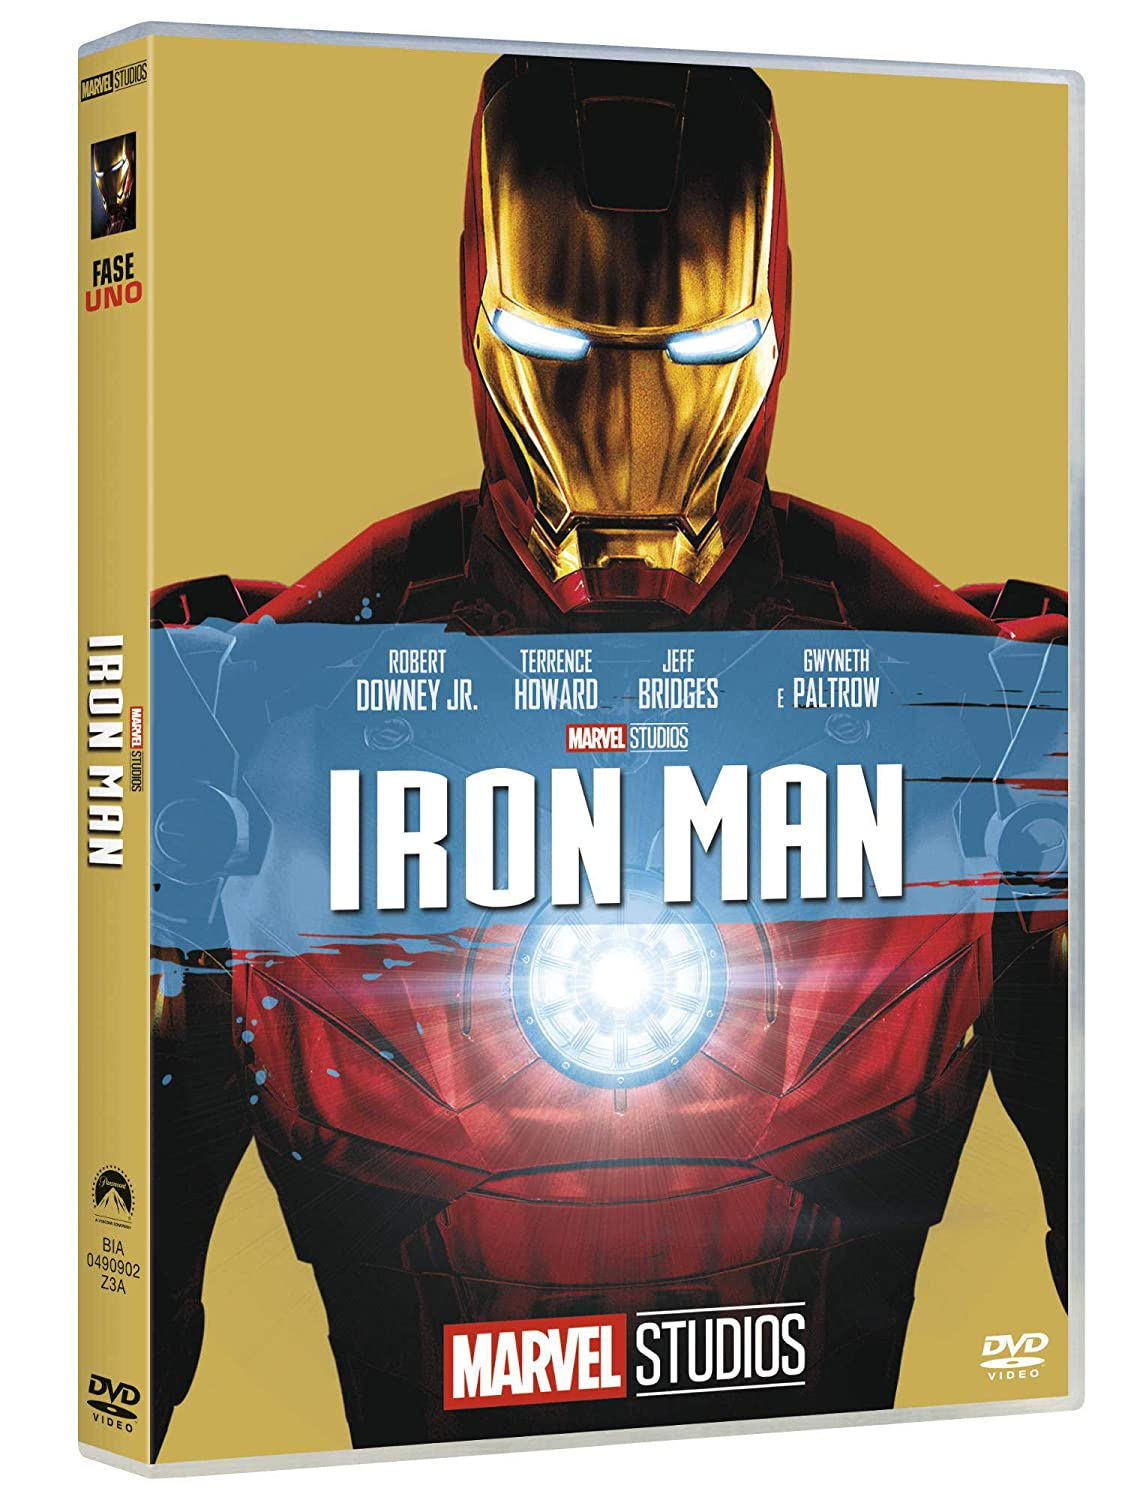 Iron Man Edizione Marvel Studios 10 Anniversario Italia DVD: Amazon.es: Jeff Bridges, Robert Downey Jr, Clark Gregg, Terrence Howard, Gwyneth Paltrow, Shaun Toub, Jon Favreau, Jeff Bridges, Robert Downey Jr: Cine y